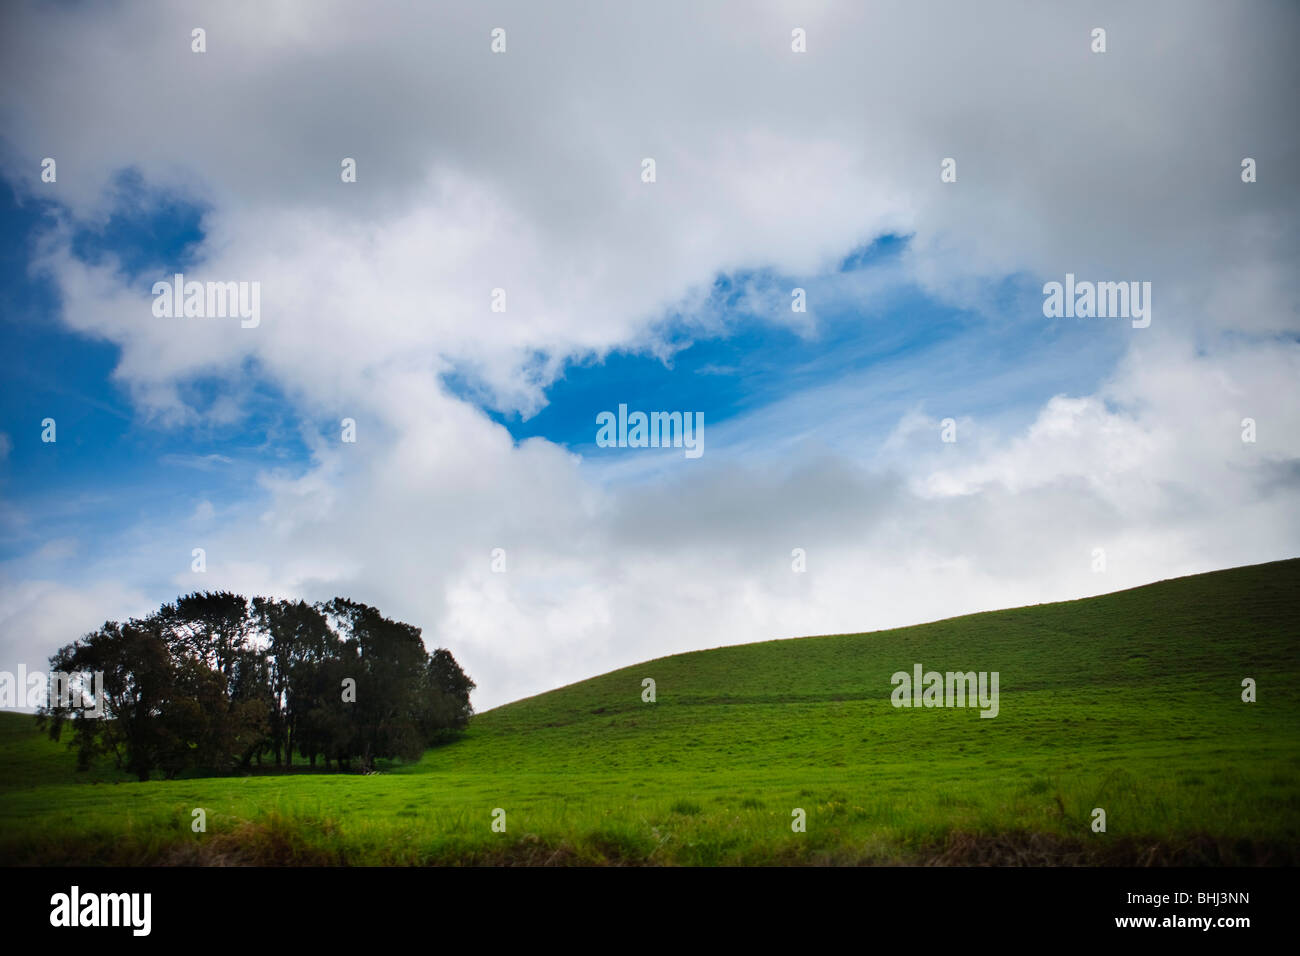 Tree in green hilly field with blue sky - Stock Image